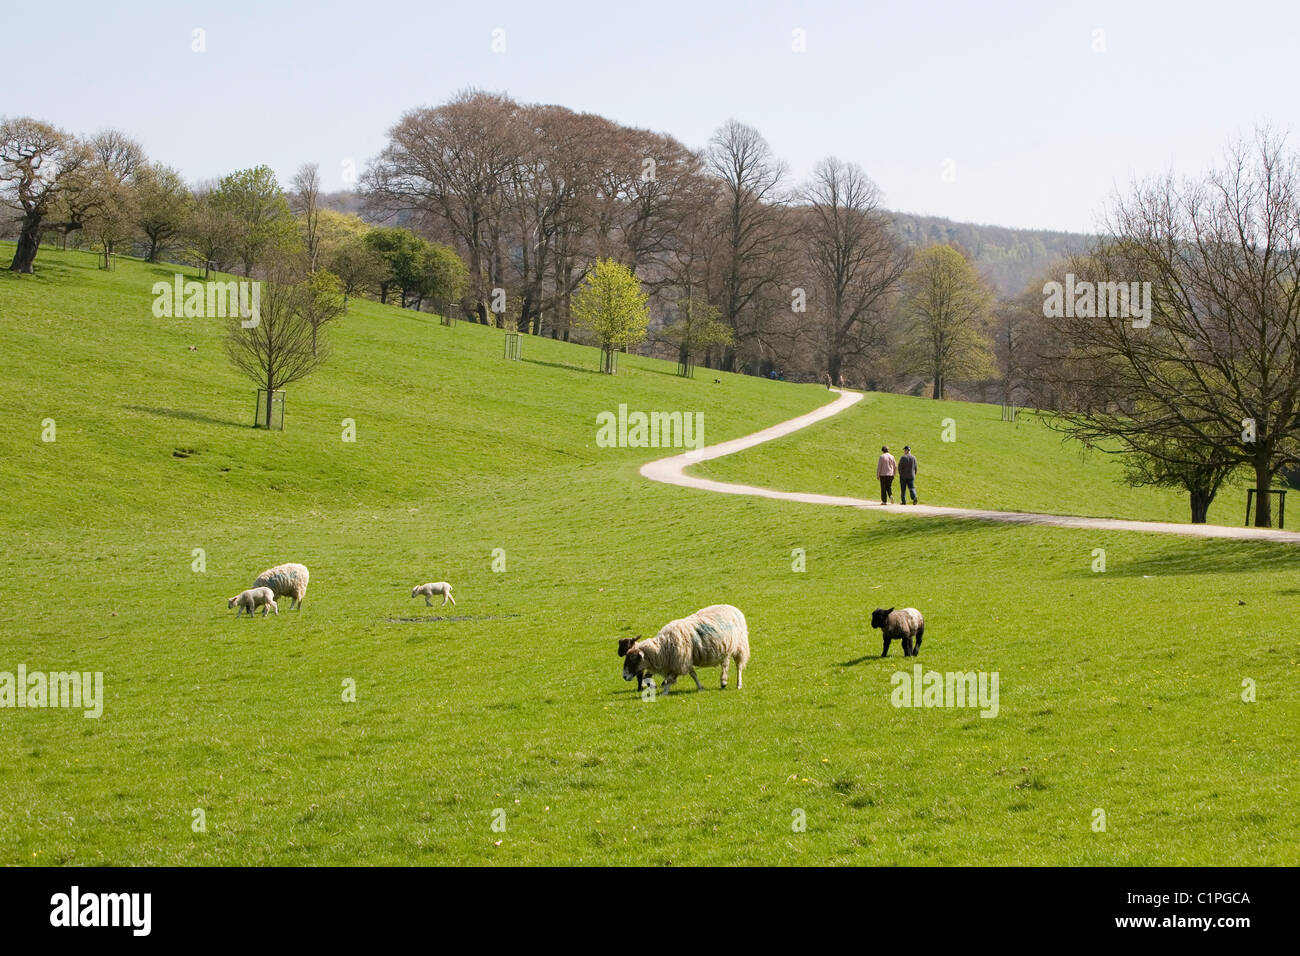 UK, Peak District, Chatsworth, sheep grazing on grass and pedestrians on path in background - Stock Image